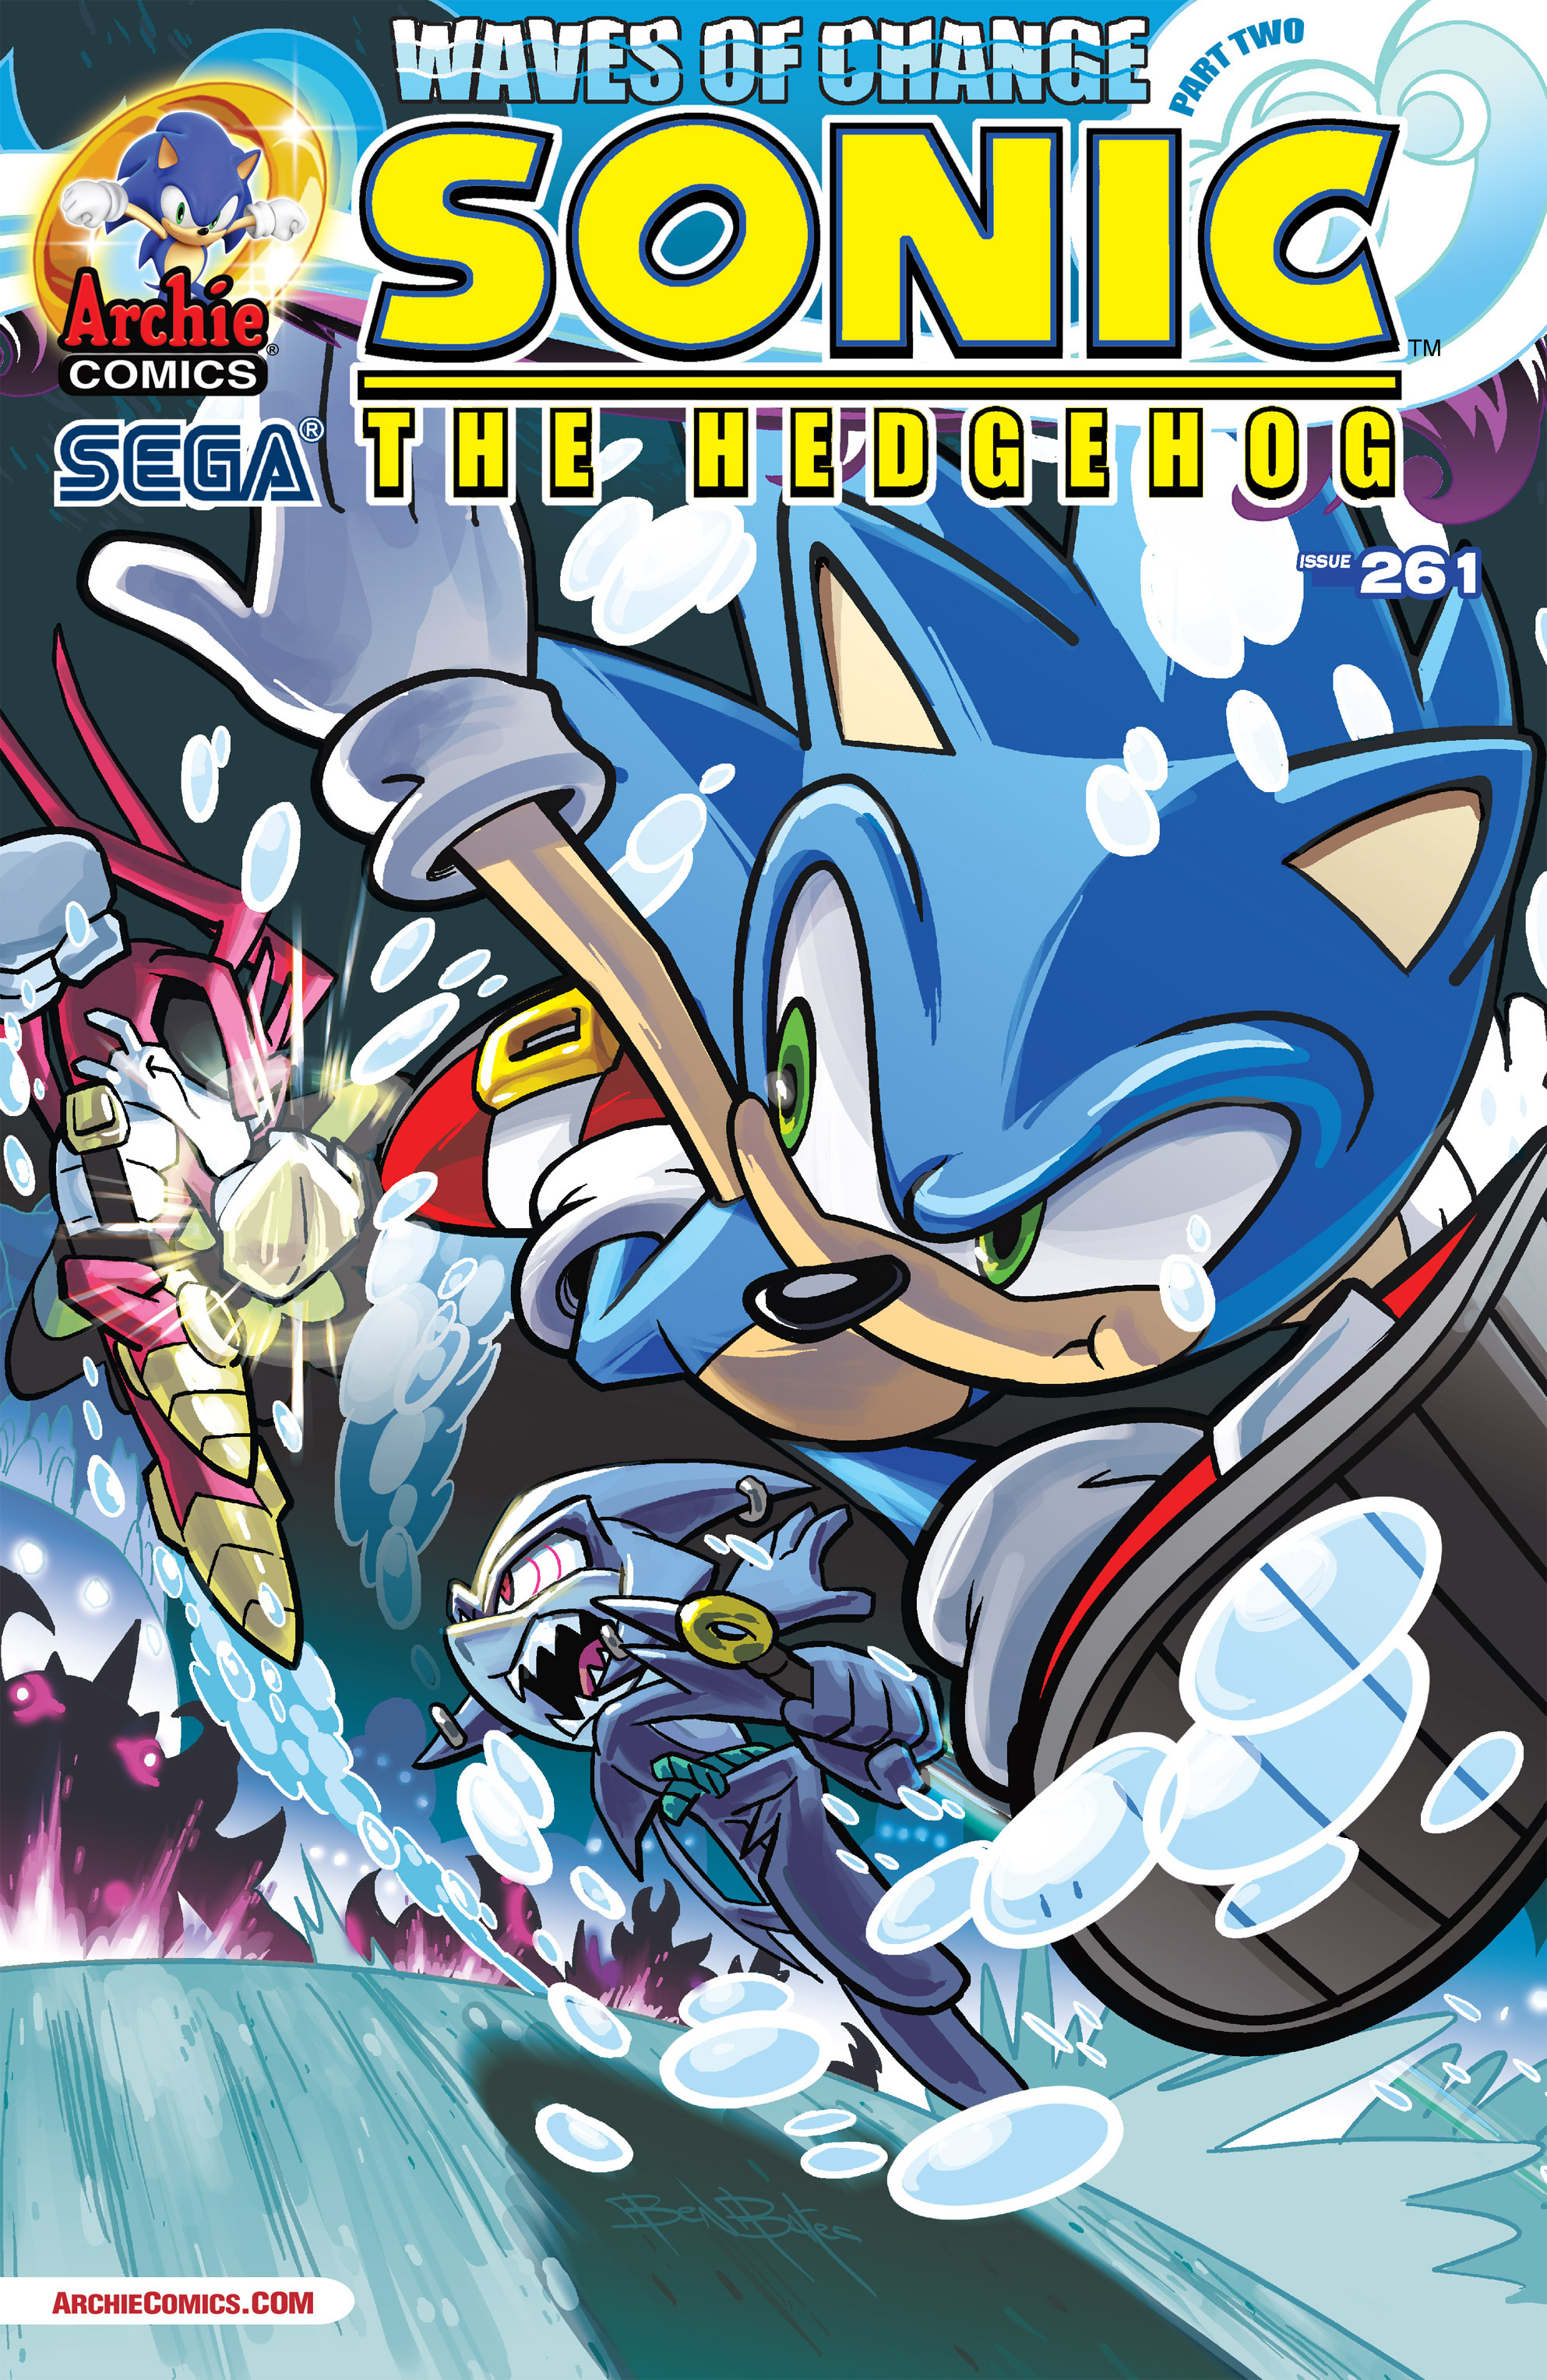 Read Online Sonic The Hedgehog Comic Issue 261